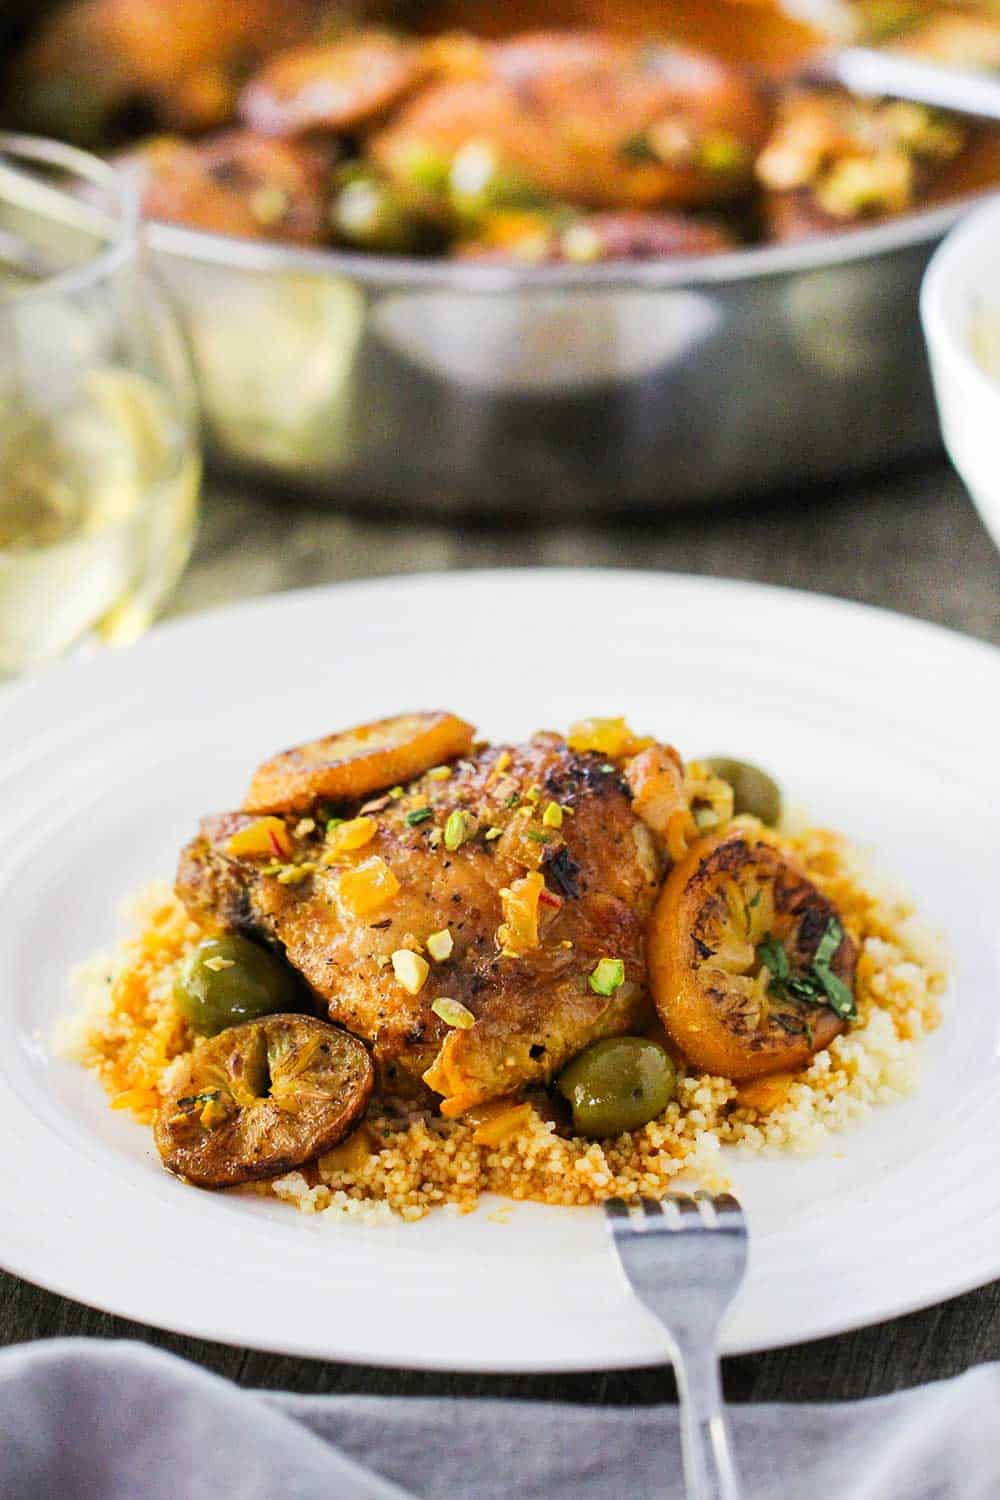 A white dinner plate with a serving of chicken tagine with preserved lemons and olives over a bed of couscous, all sitting next to a skillet filled with the chicken tagine.